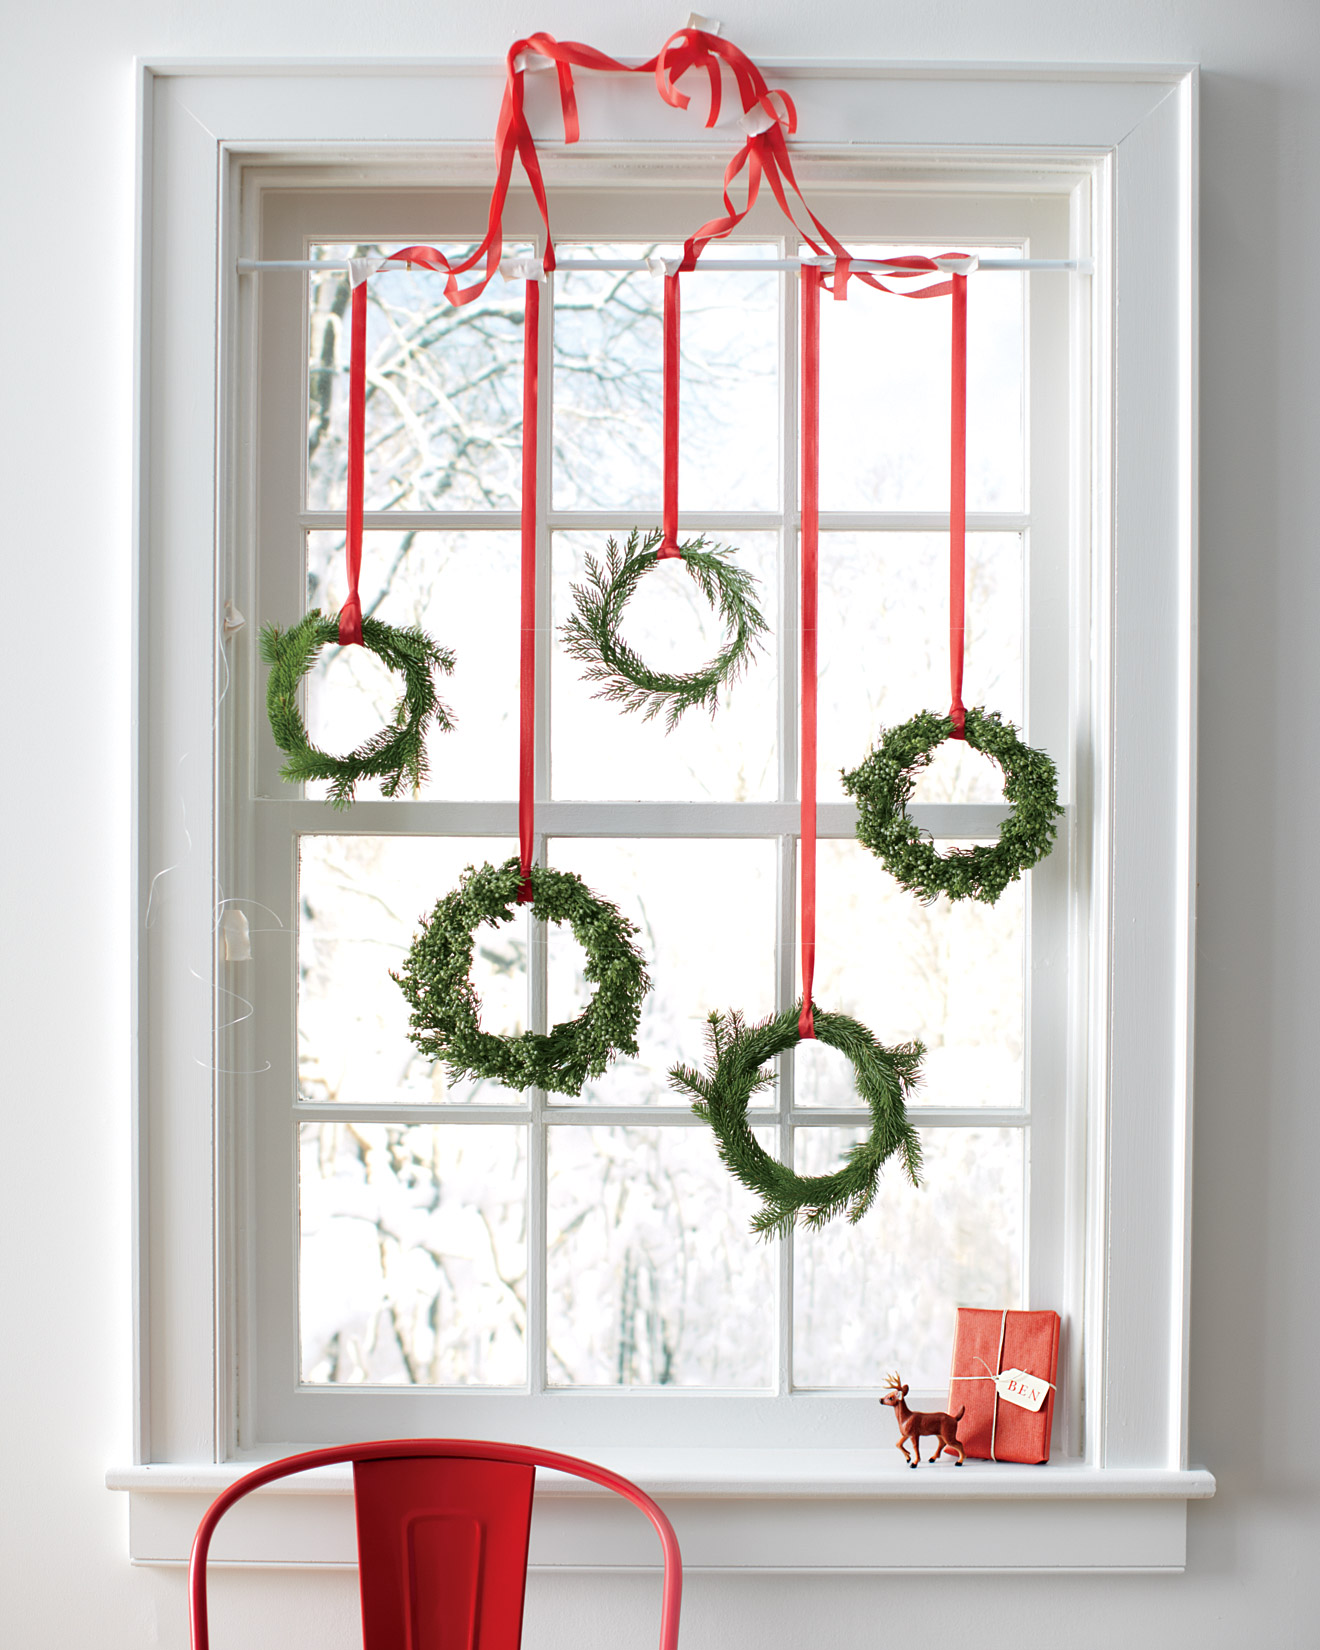 good-things-wreaths-1-mld107860.jpg